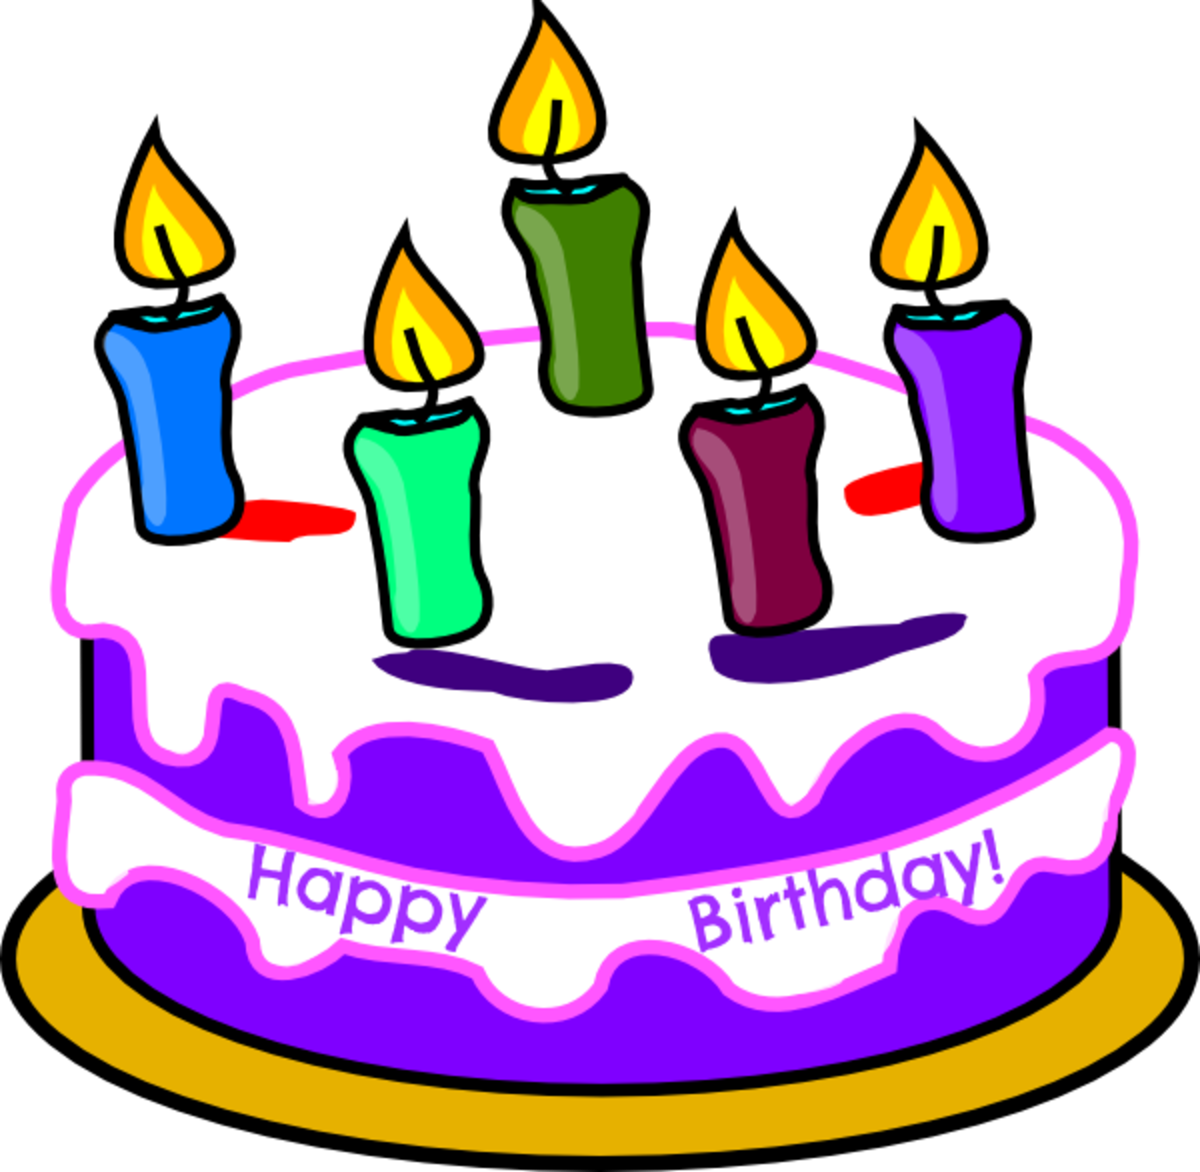 Happy Birthday Cake with White and Purple Frosting